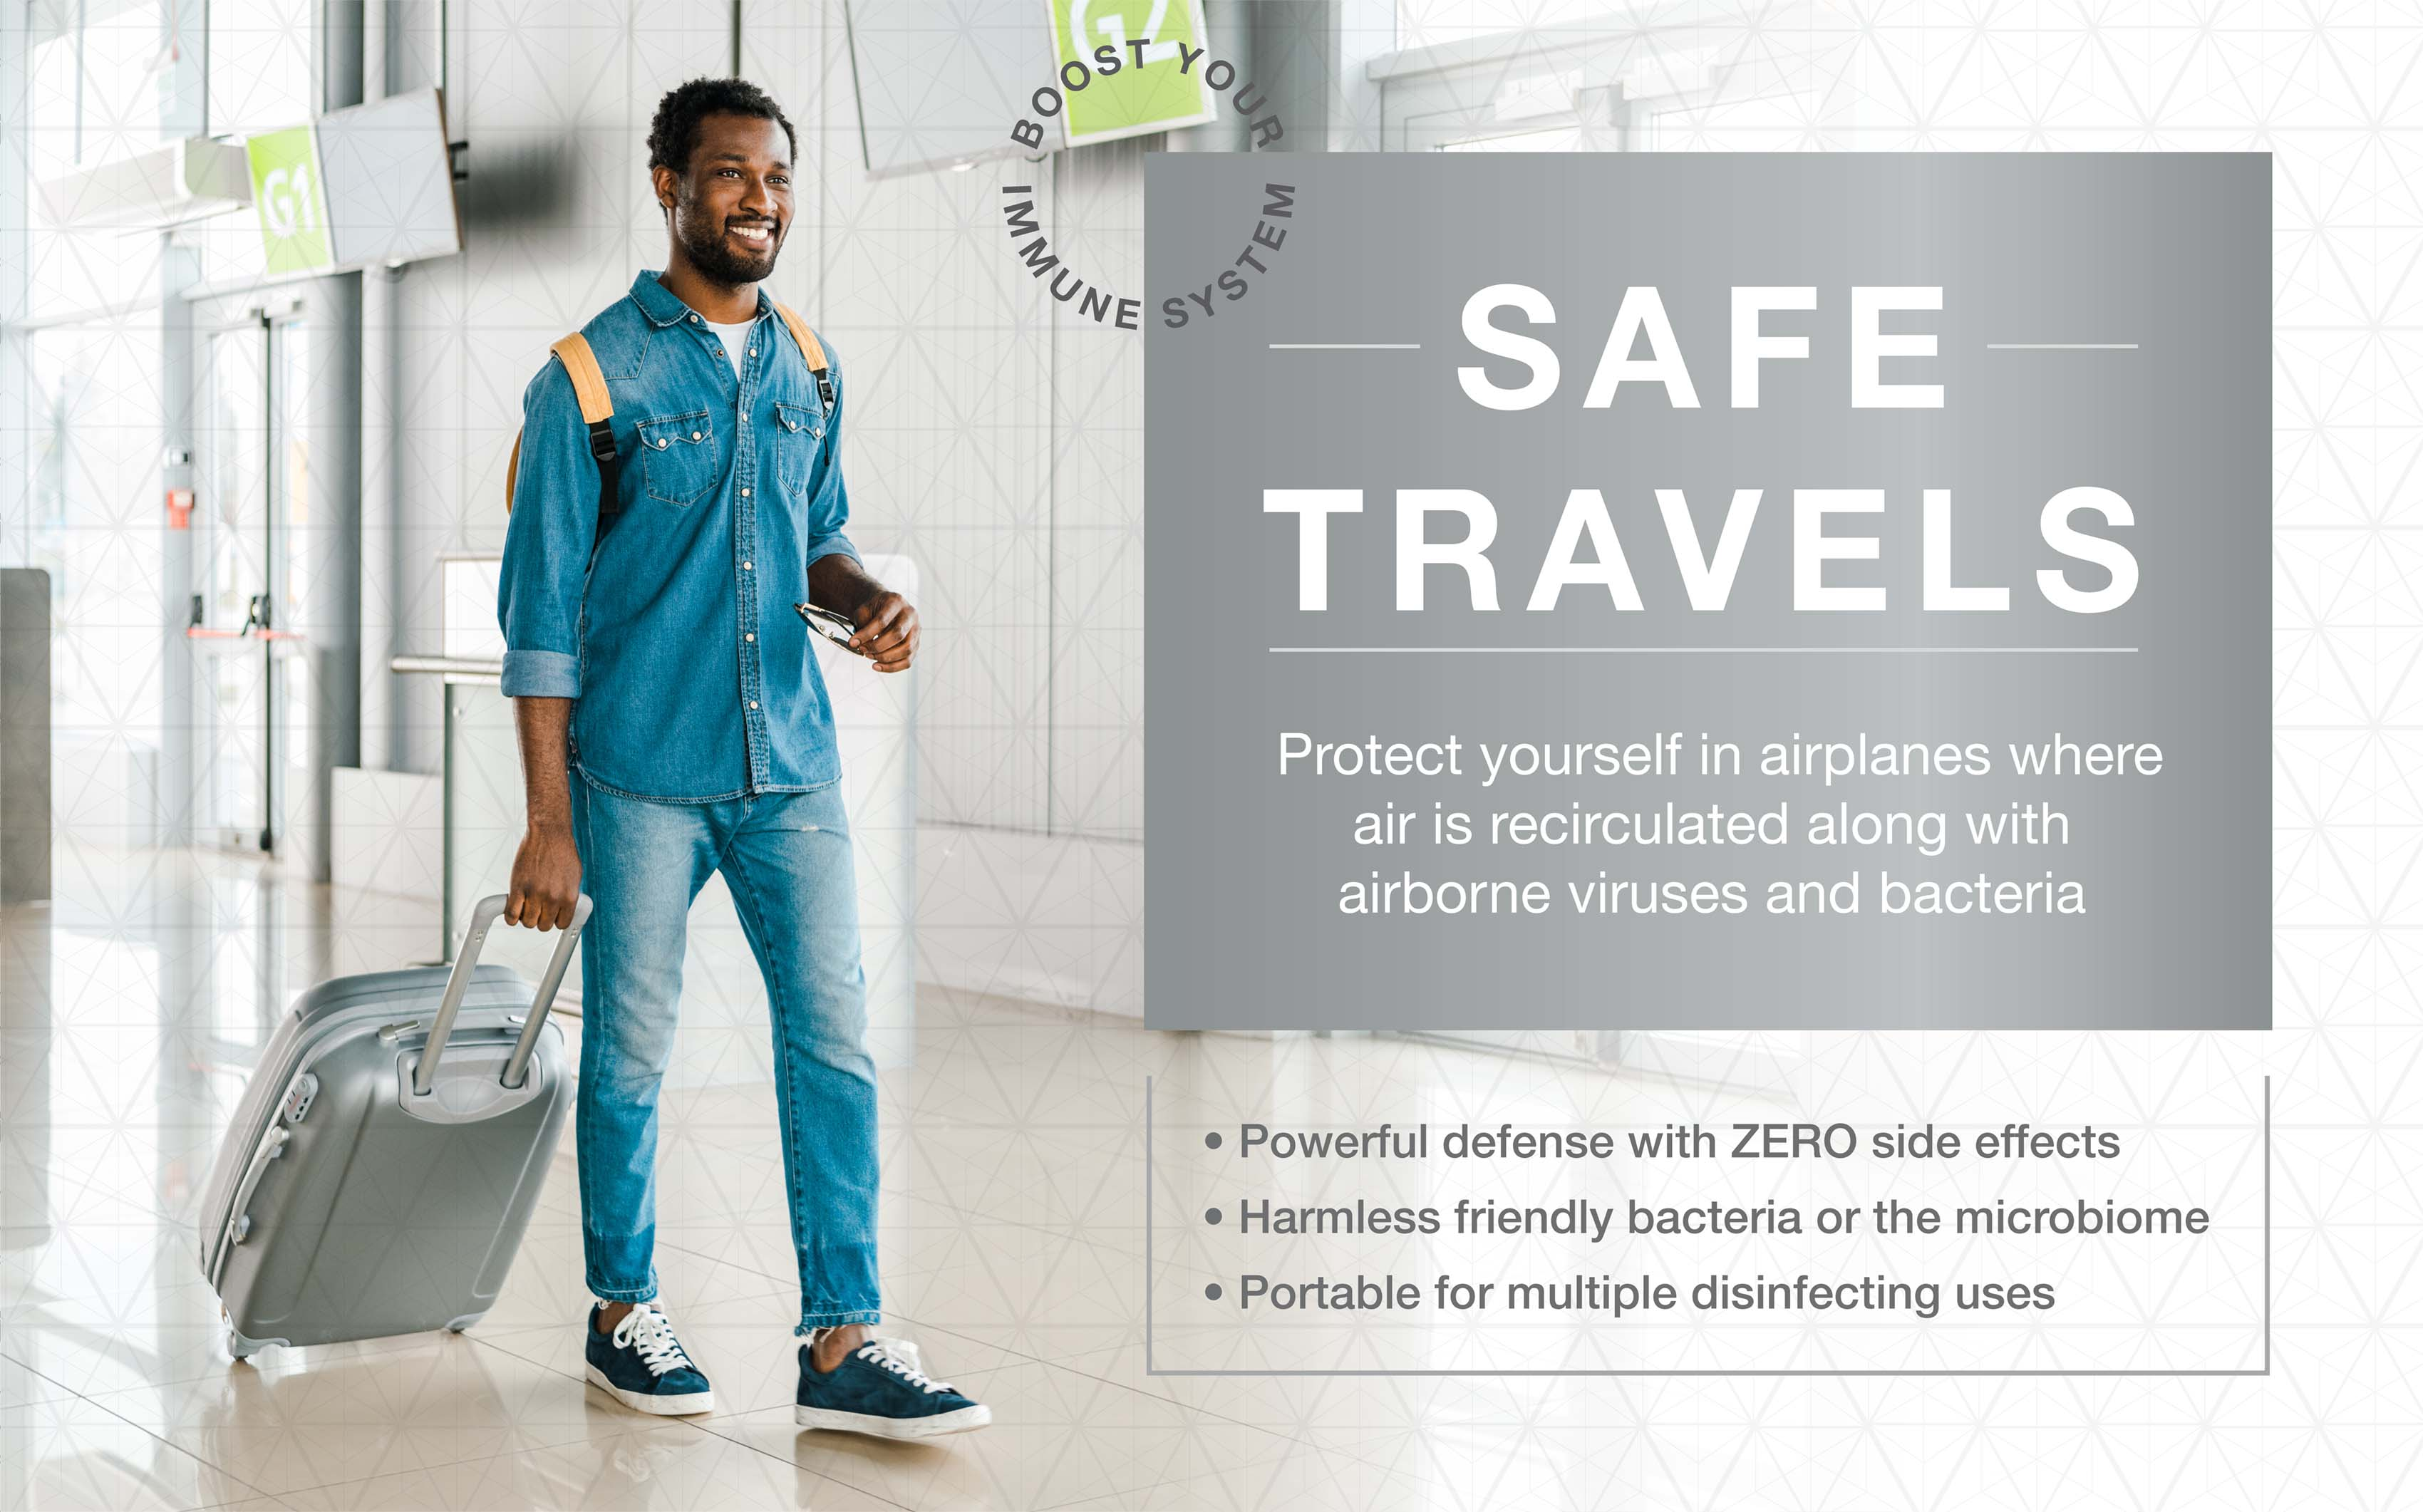 Protect yourself in airplanes where air is recirculated along airborne viruses and bacteria.